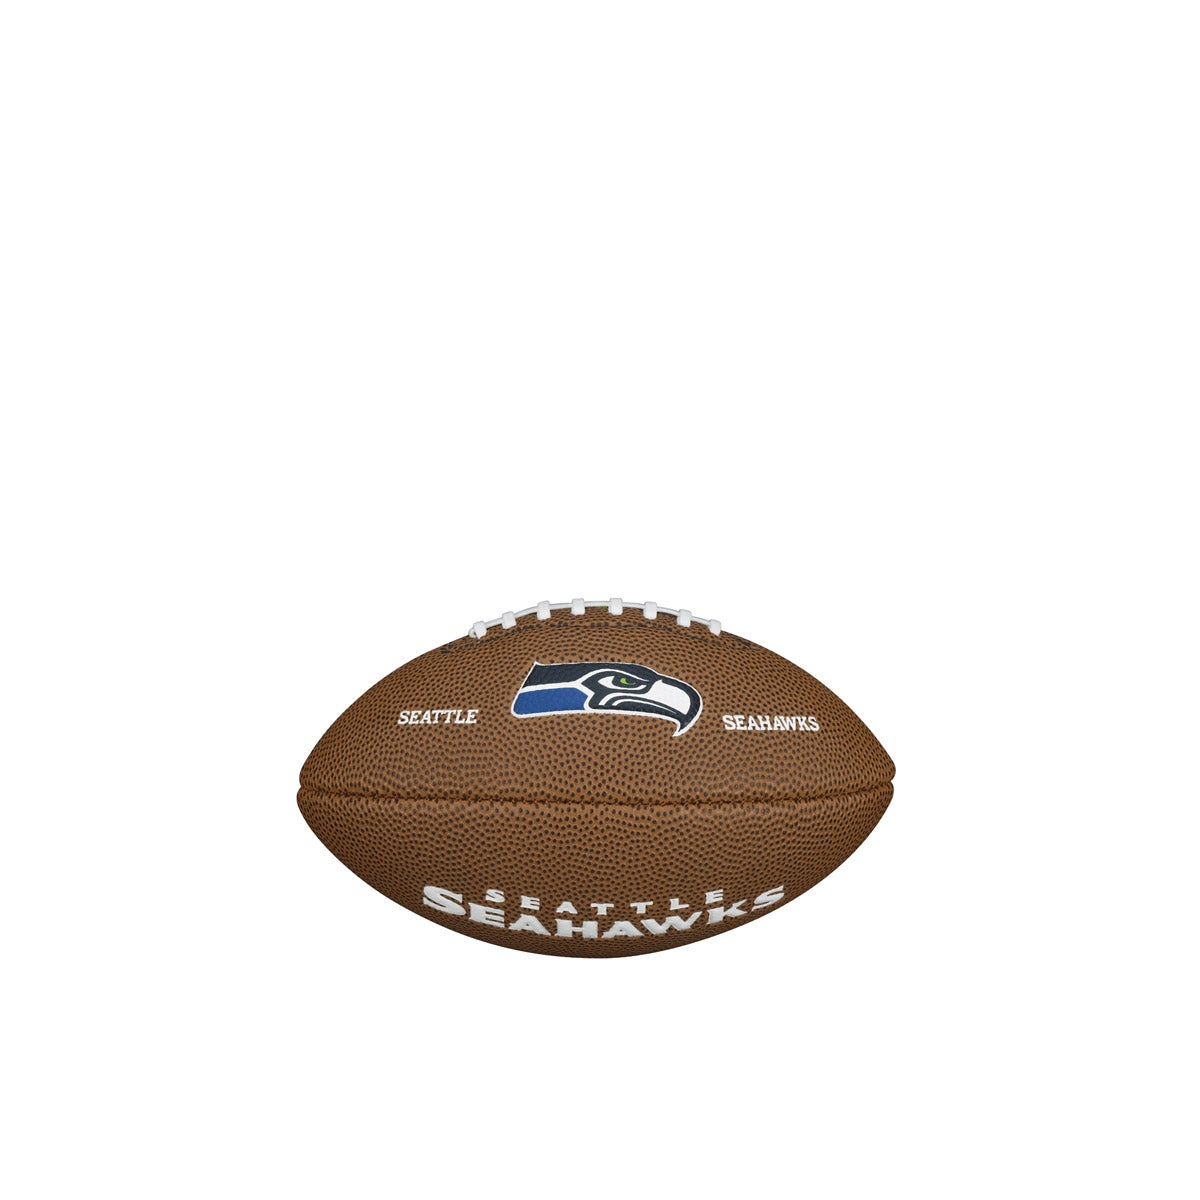 ? NFL TEAM LOGO MINI SIZE FOOTBALL - SEATTLE SEAHAWKS